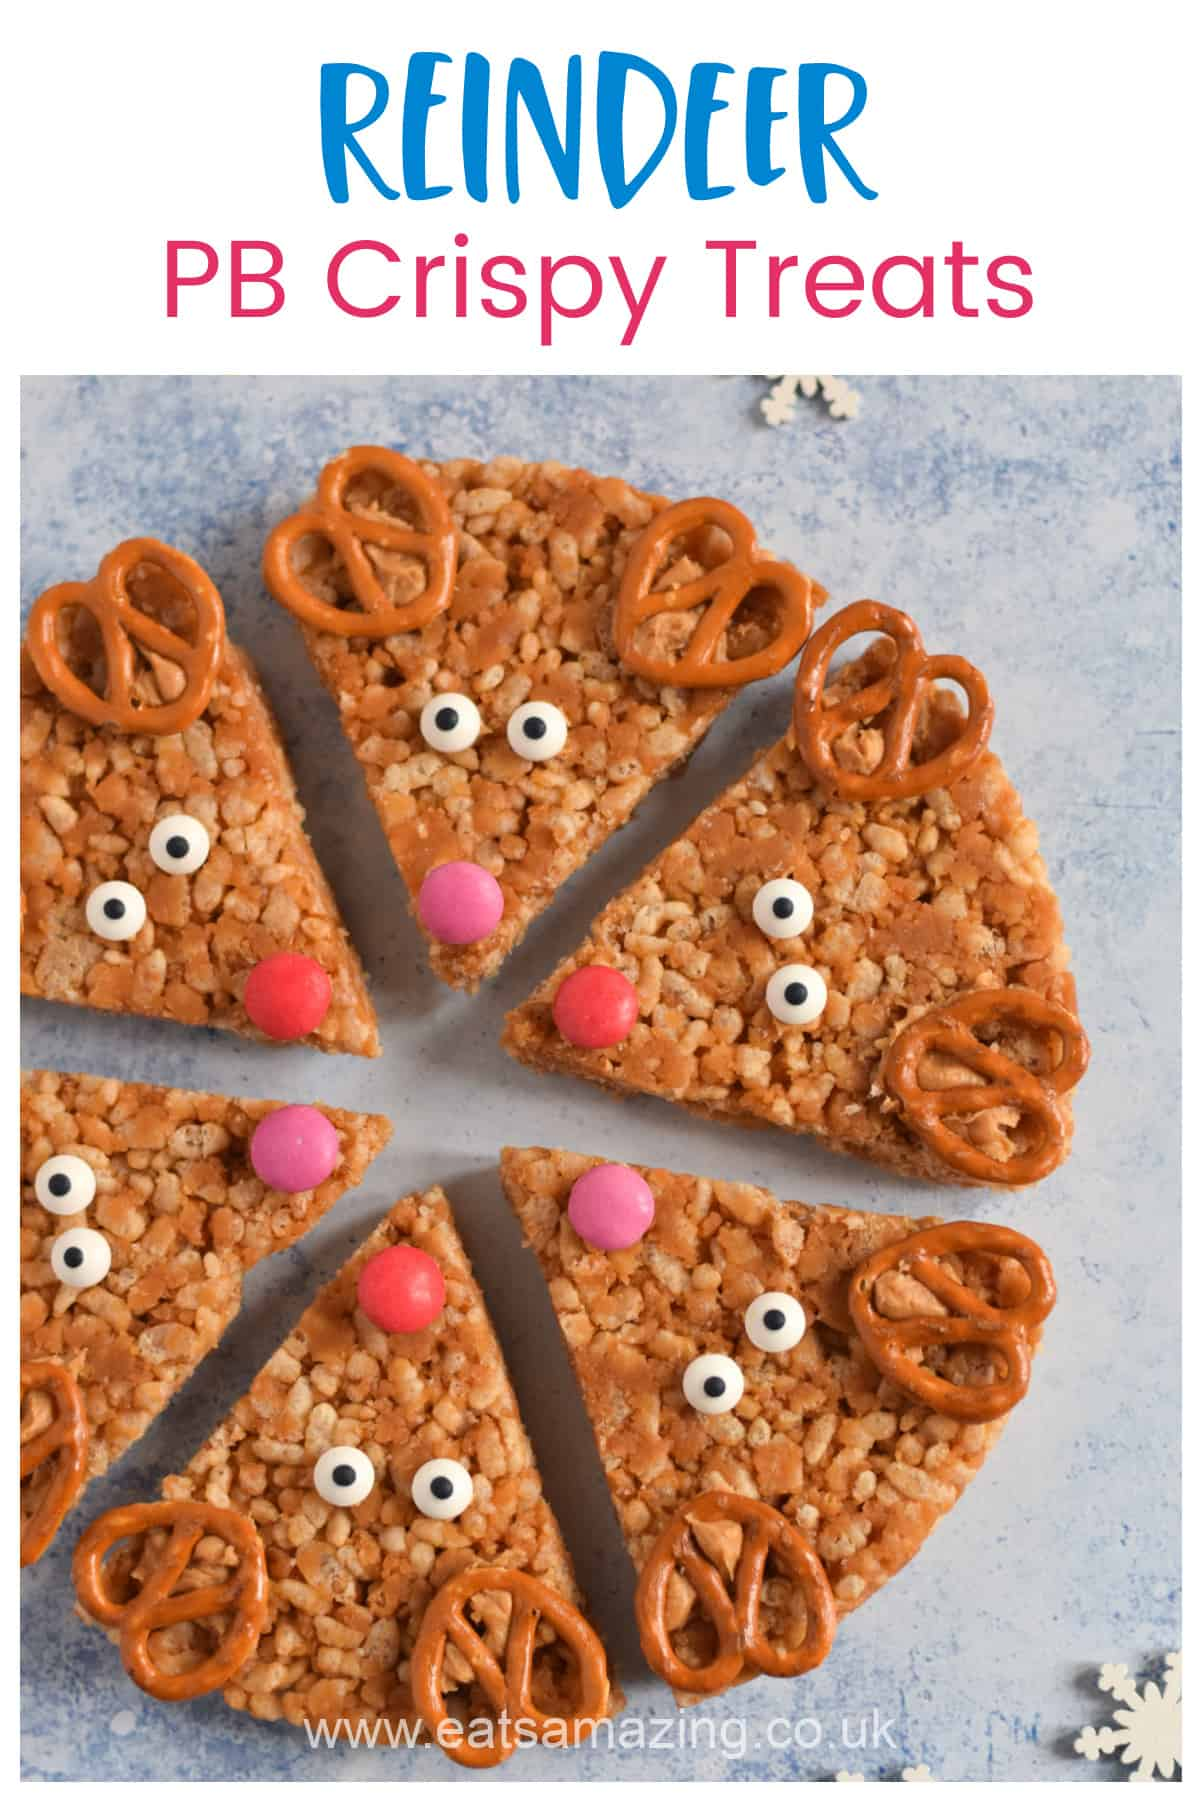 How to make Reindeer themed peanut butter rice crispy treats - fun Christmas recipe for kids with video